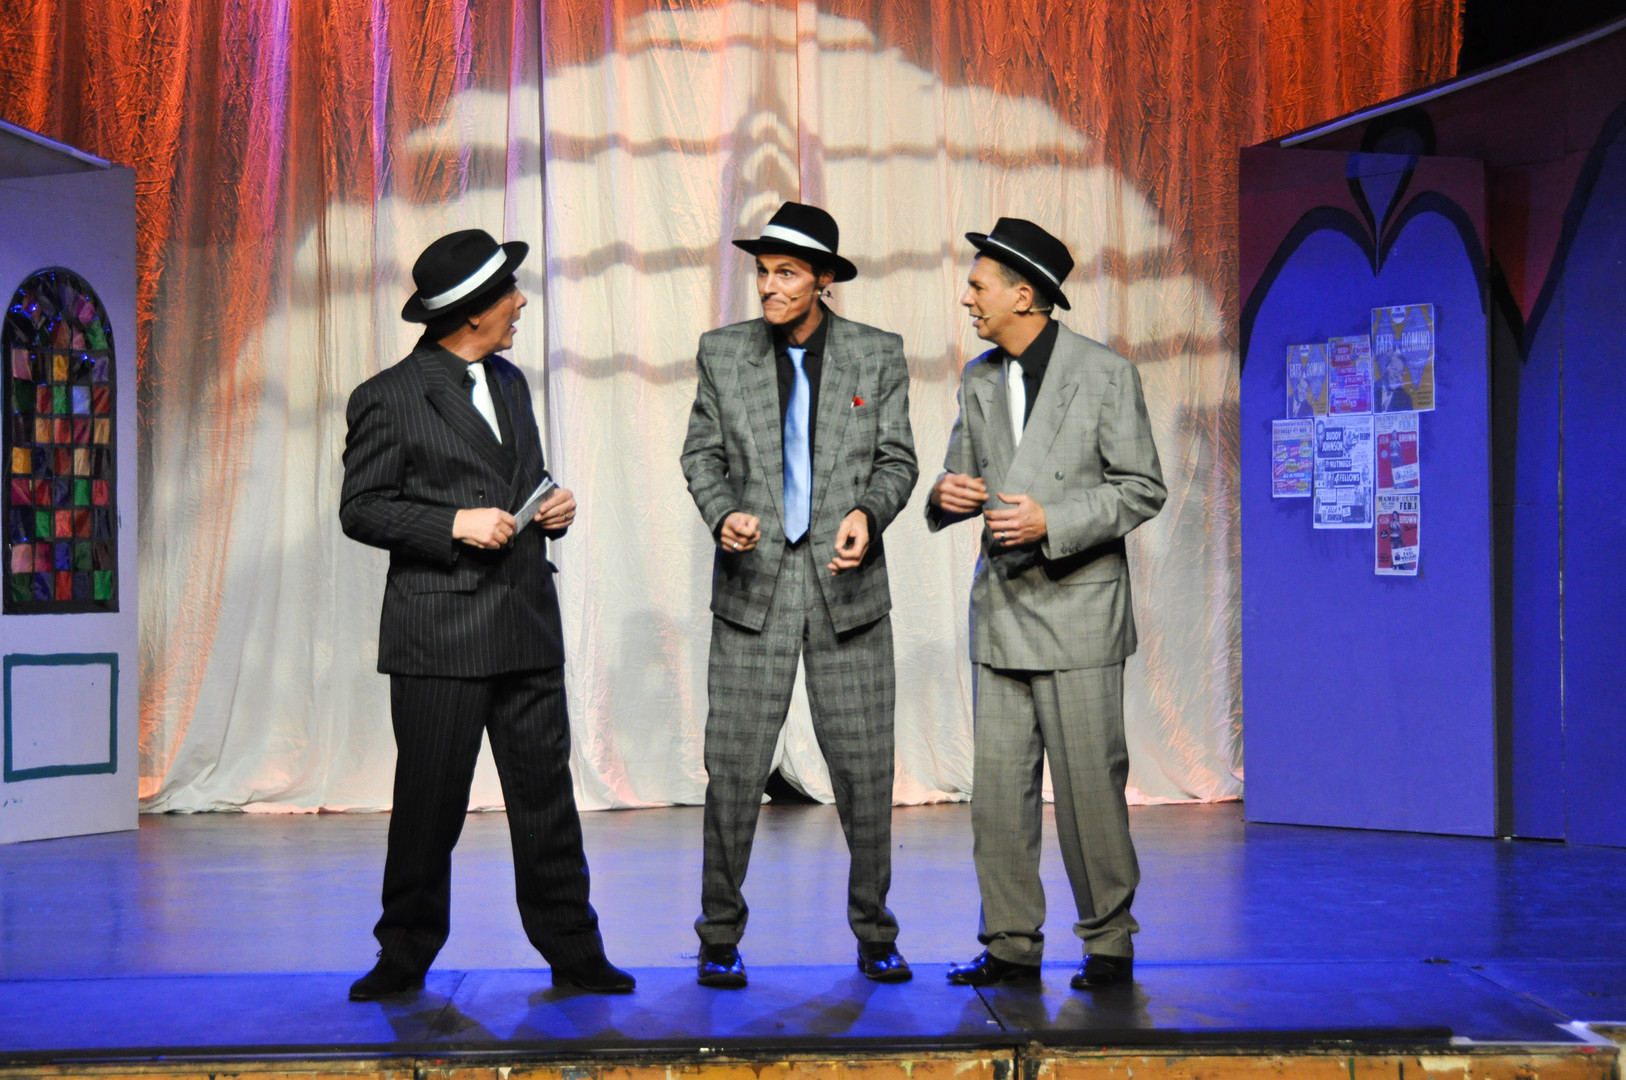 Guys & Dolls - Display 65 (4 of 65).jpg